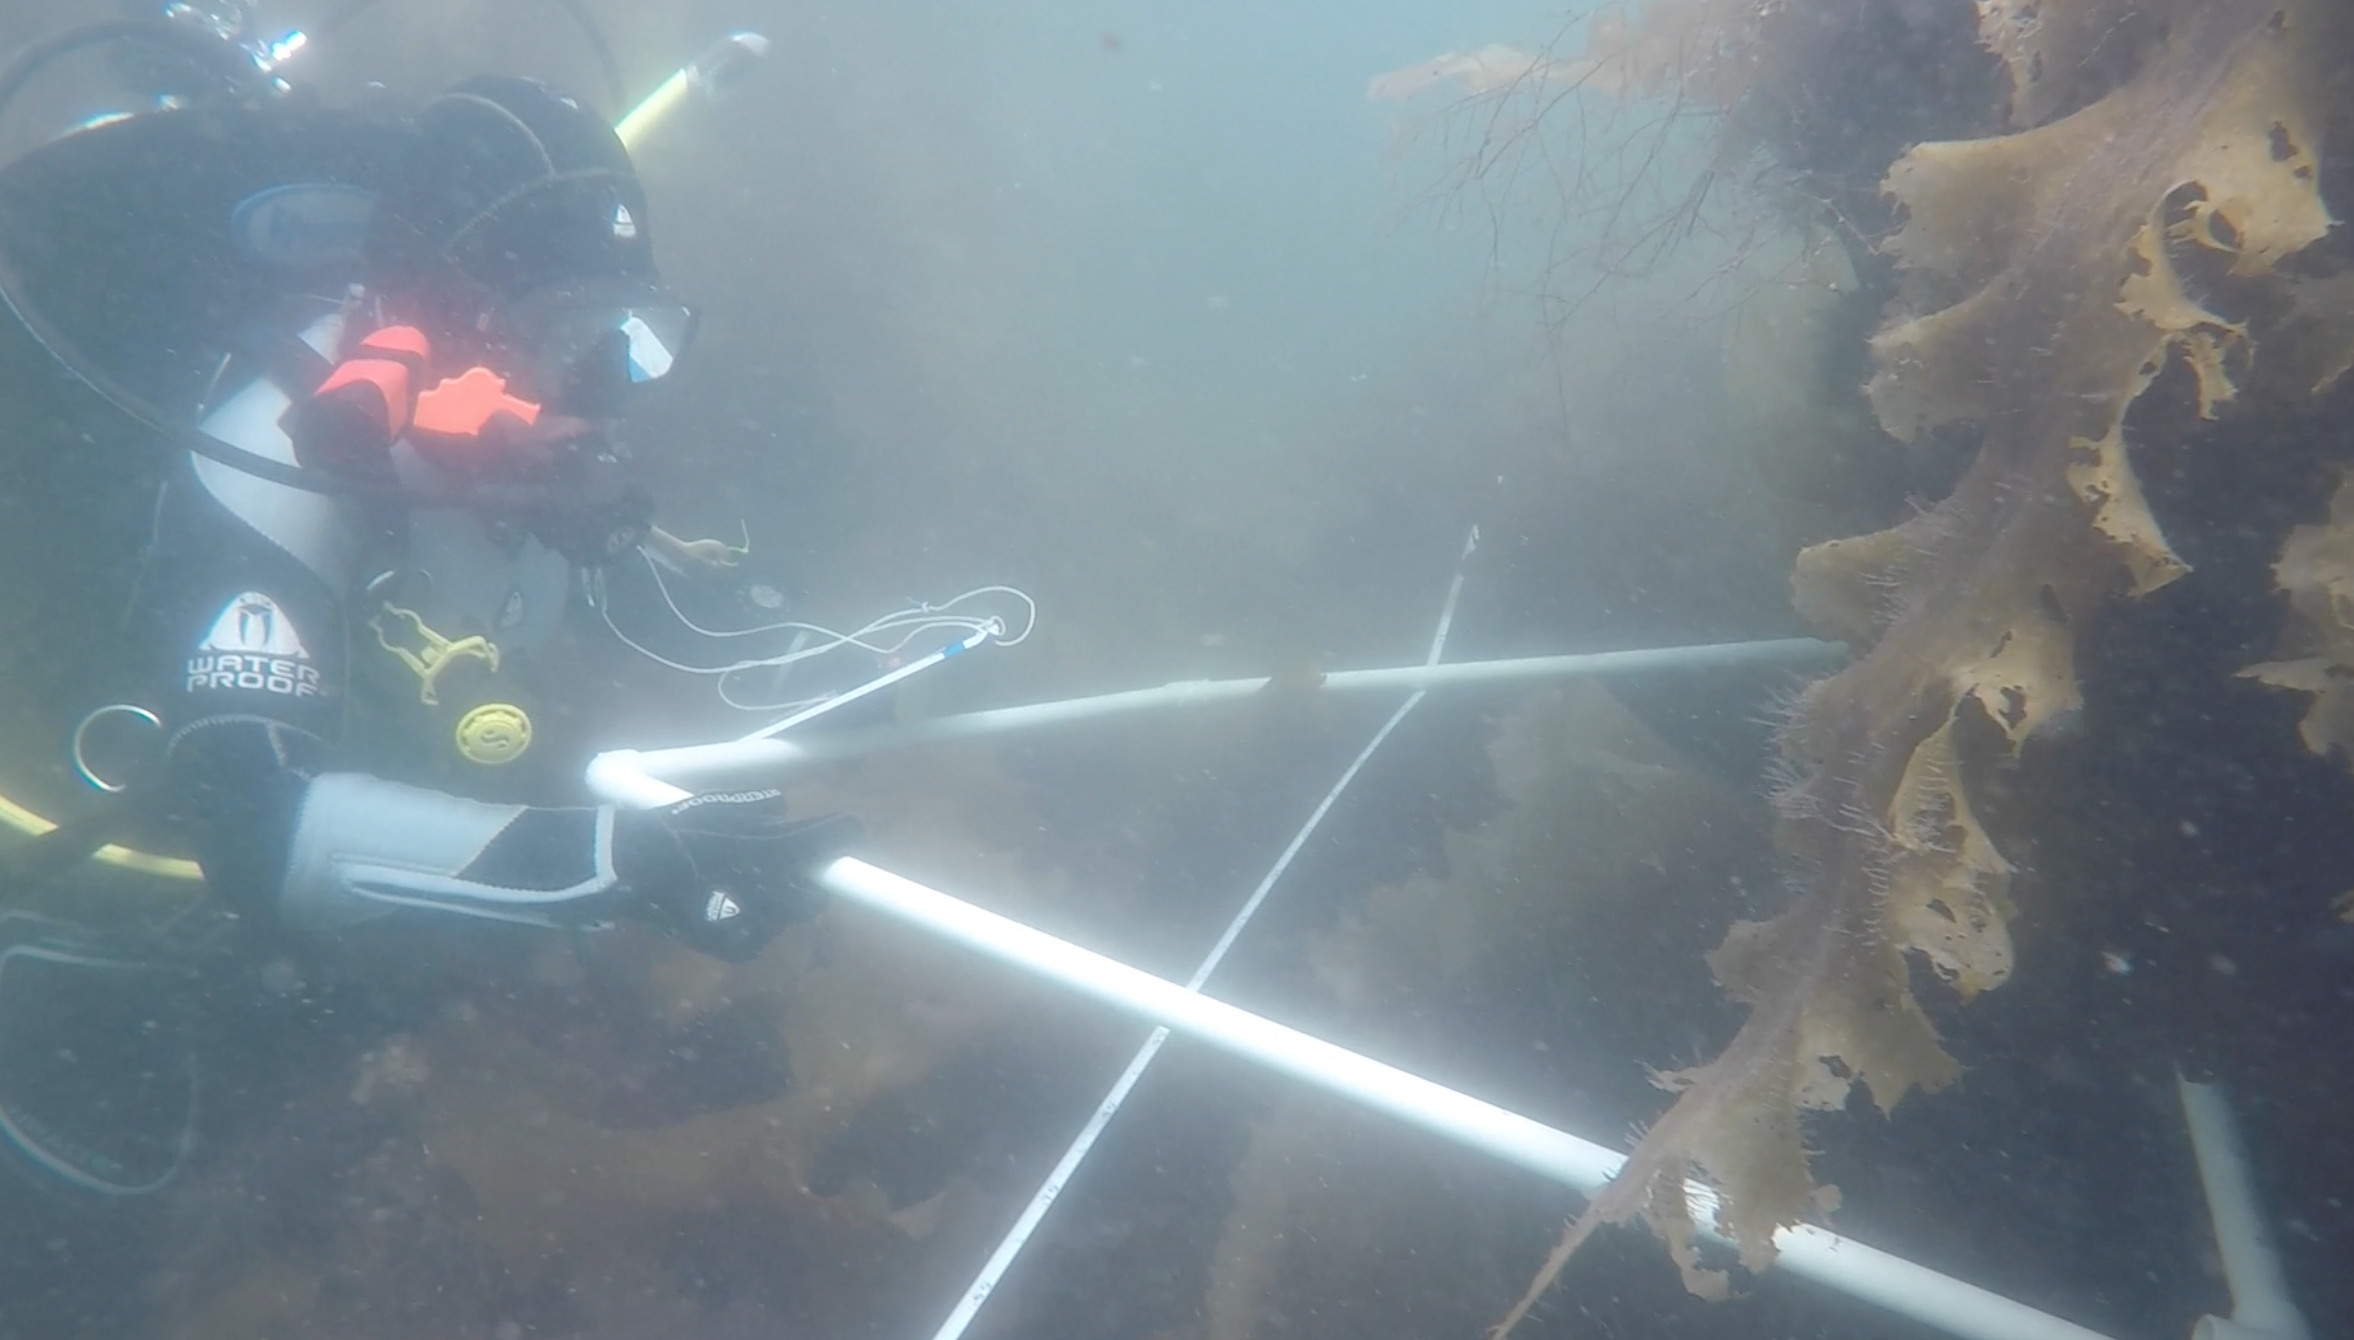 I'm placing a quadrat along our transect for the quadrat protocol in which we count the number of kelp fronds and invertebrates in a 1m2 quadrat